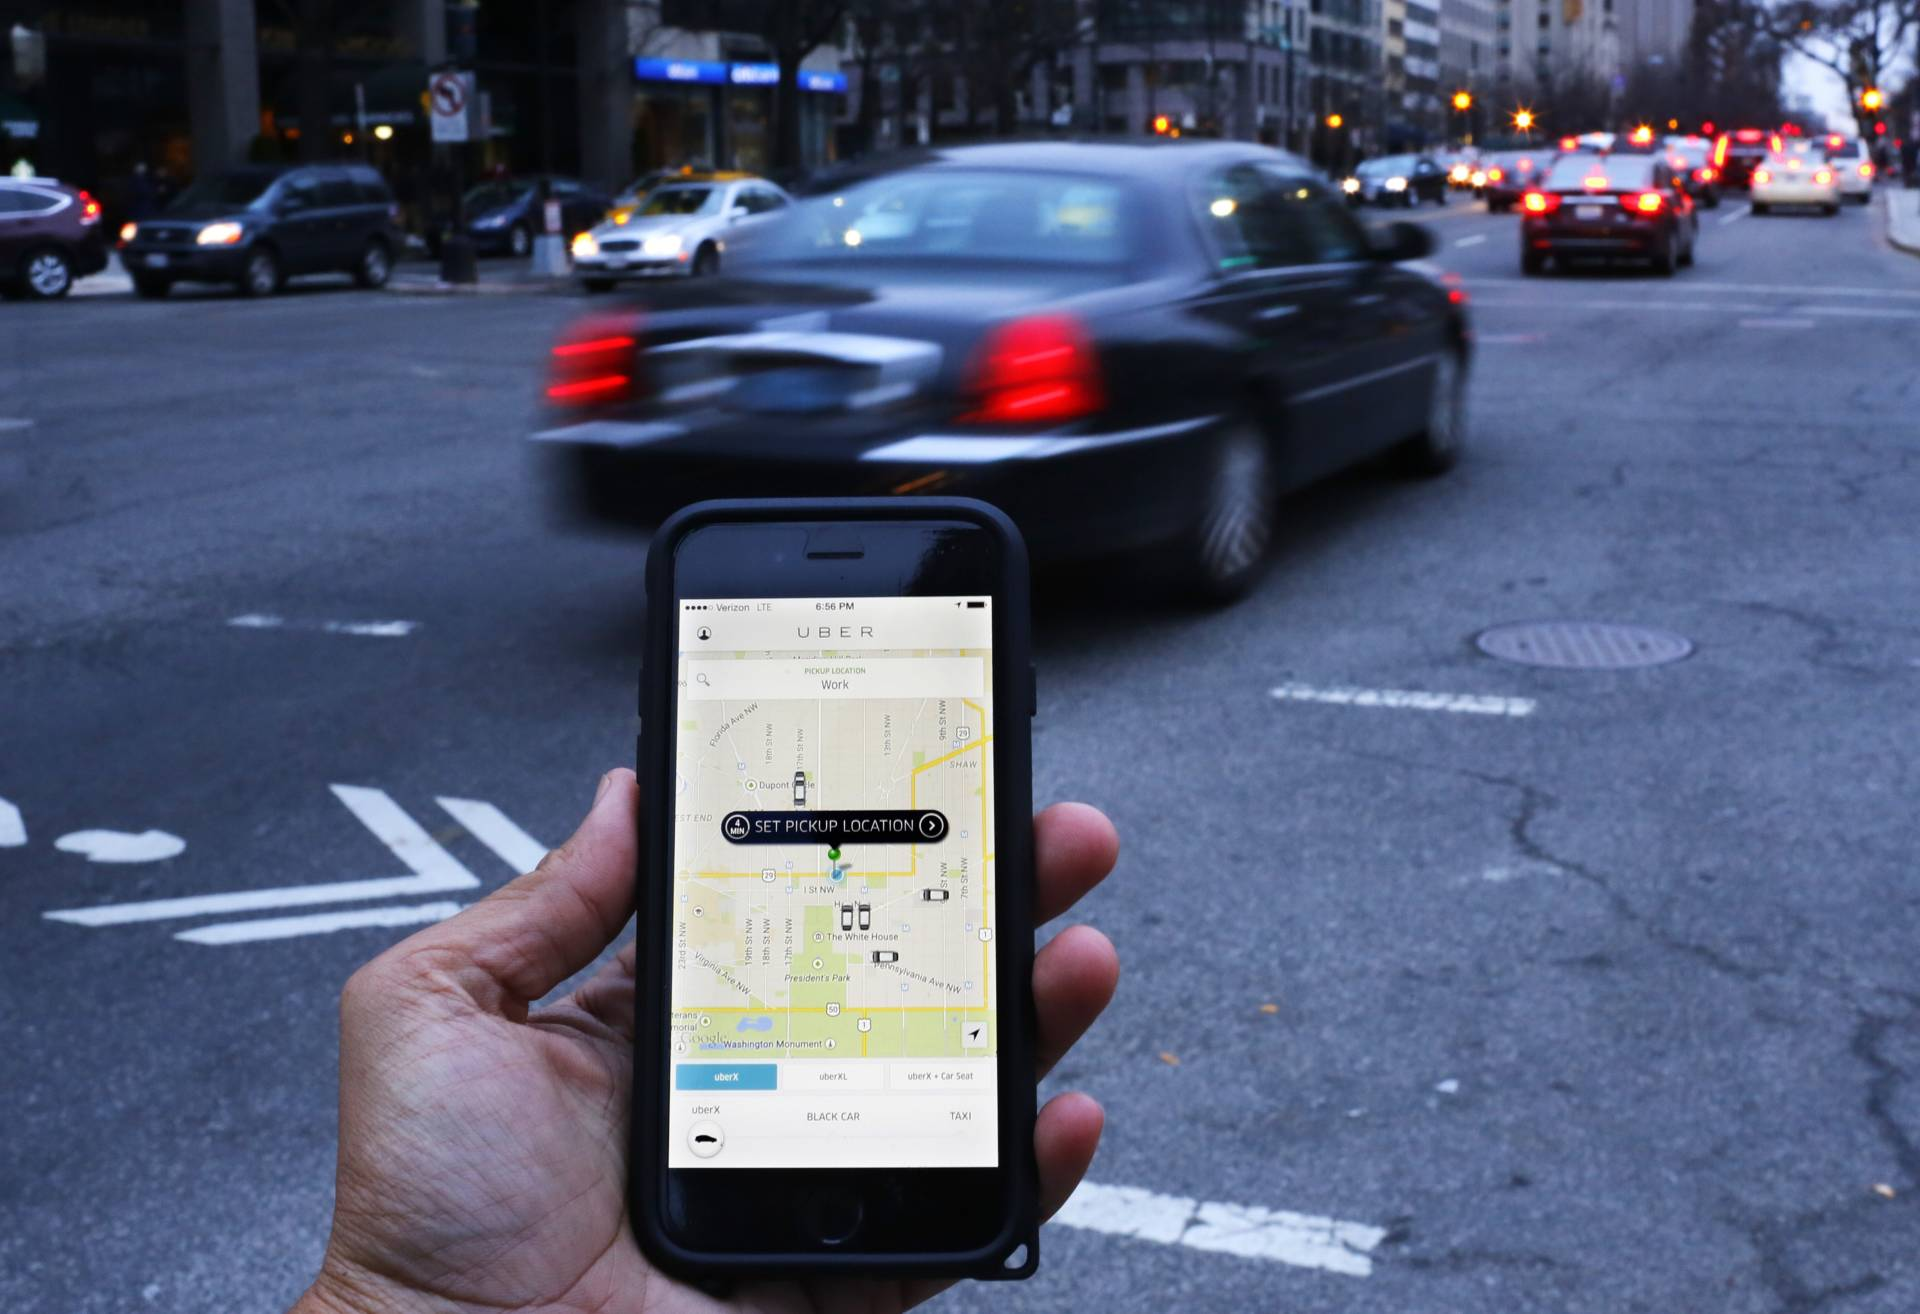 Pilot Program to Help Dublin Commuters Pay for Uber, Lyft, Cabs